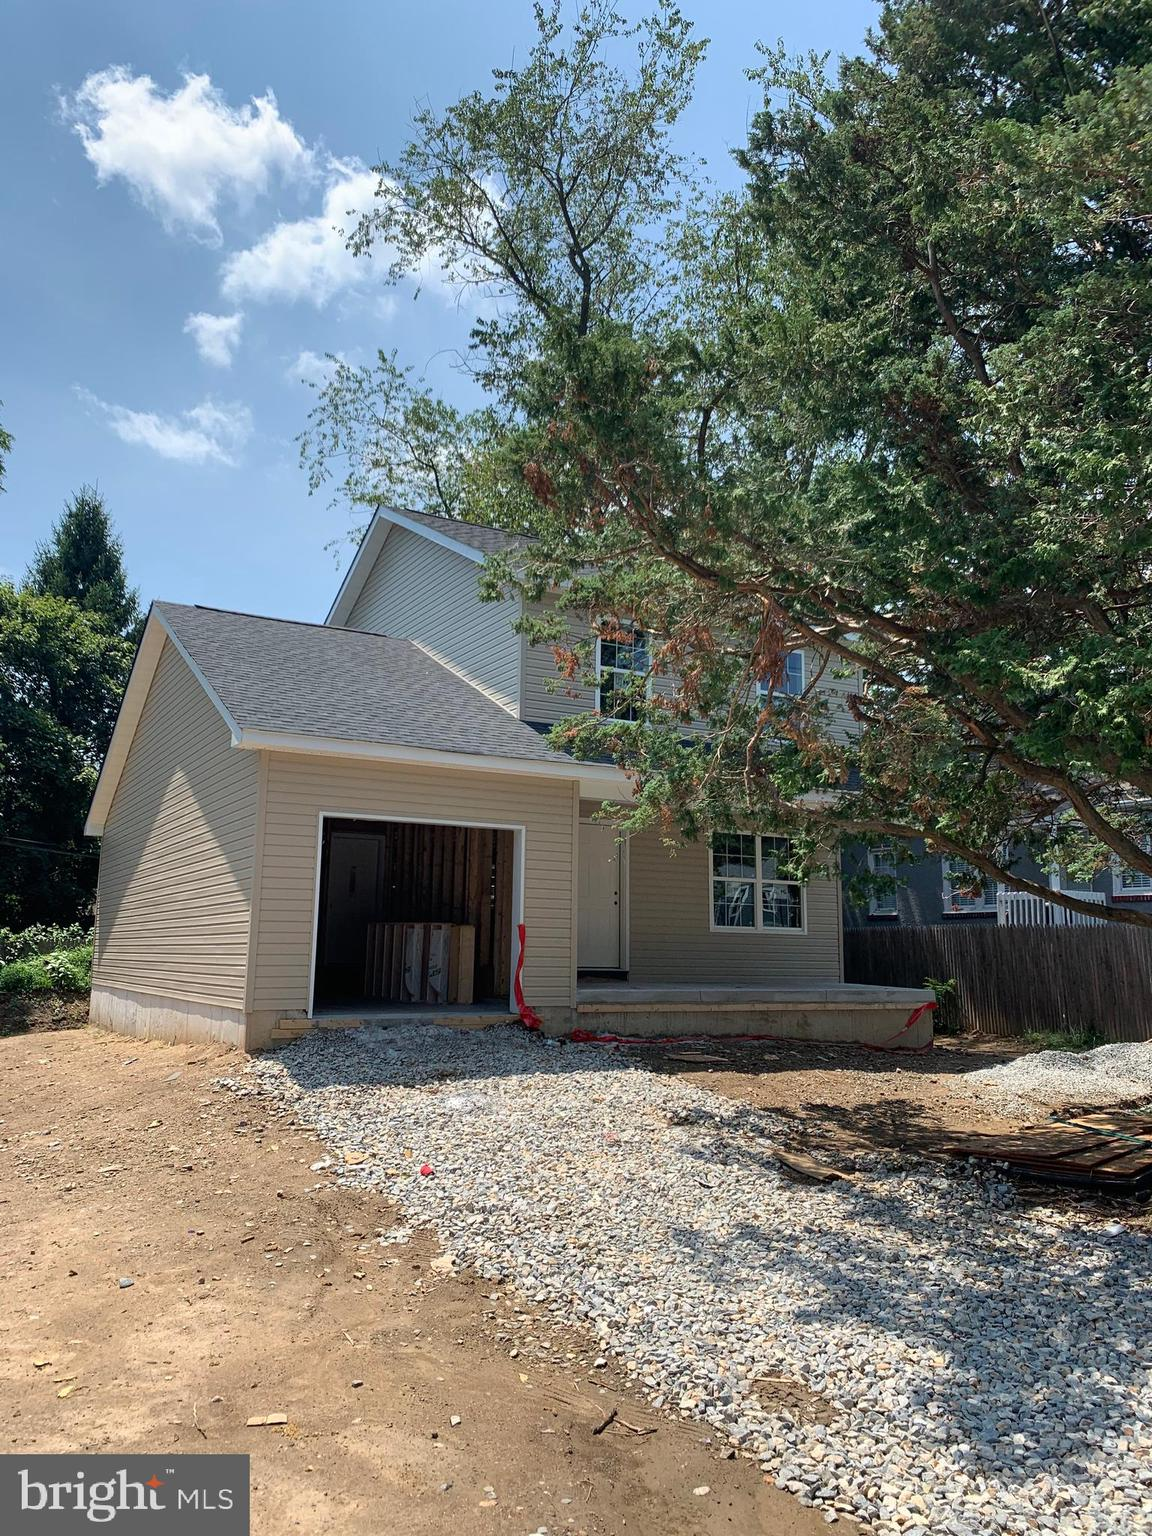 Come check out this 3 bedroom 2.5 bath, new construction home located in Tuxedo park. Construction will be completed within 30 days. This brand new home is ready for its new owner ! Schedule your appointments today !